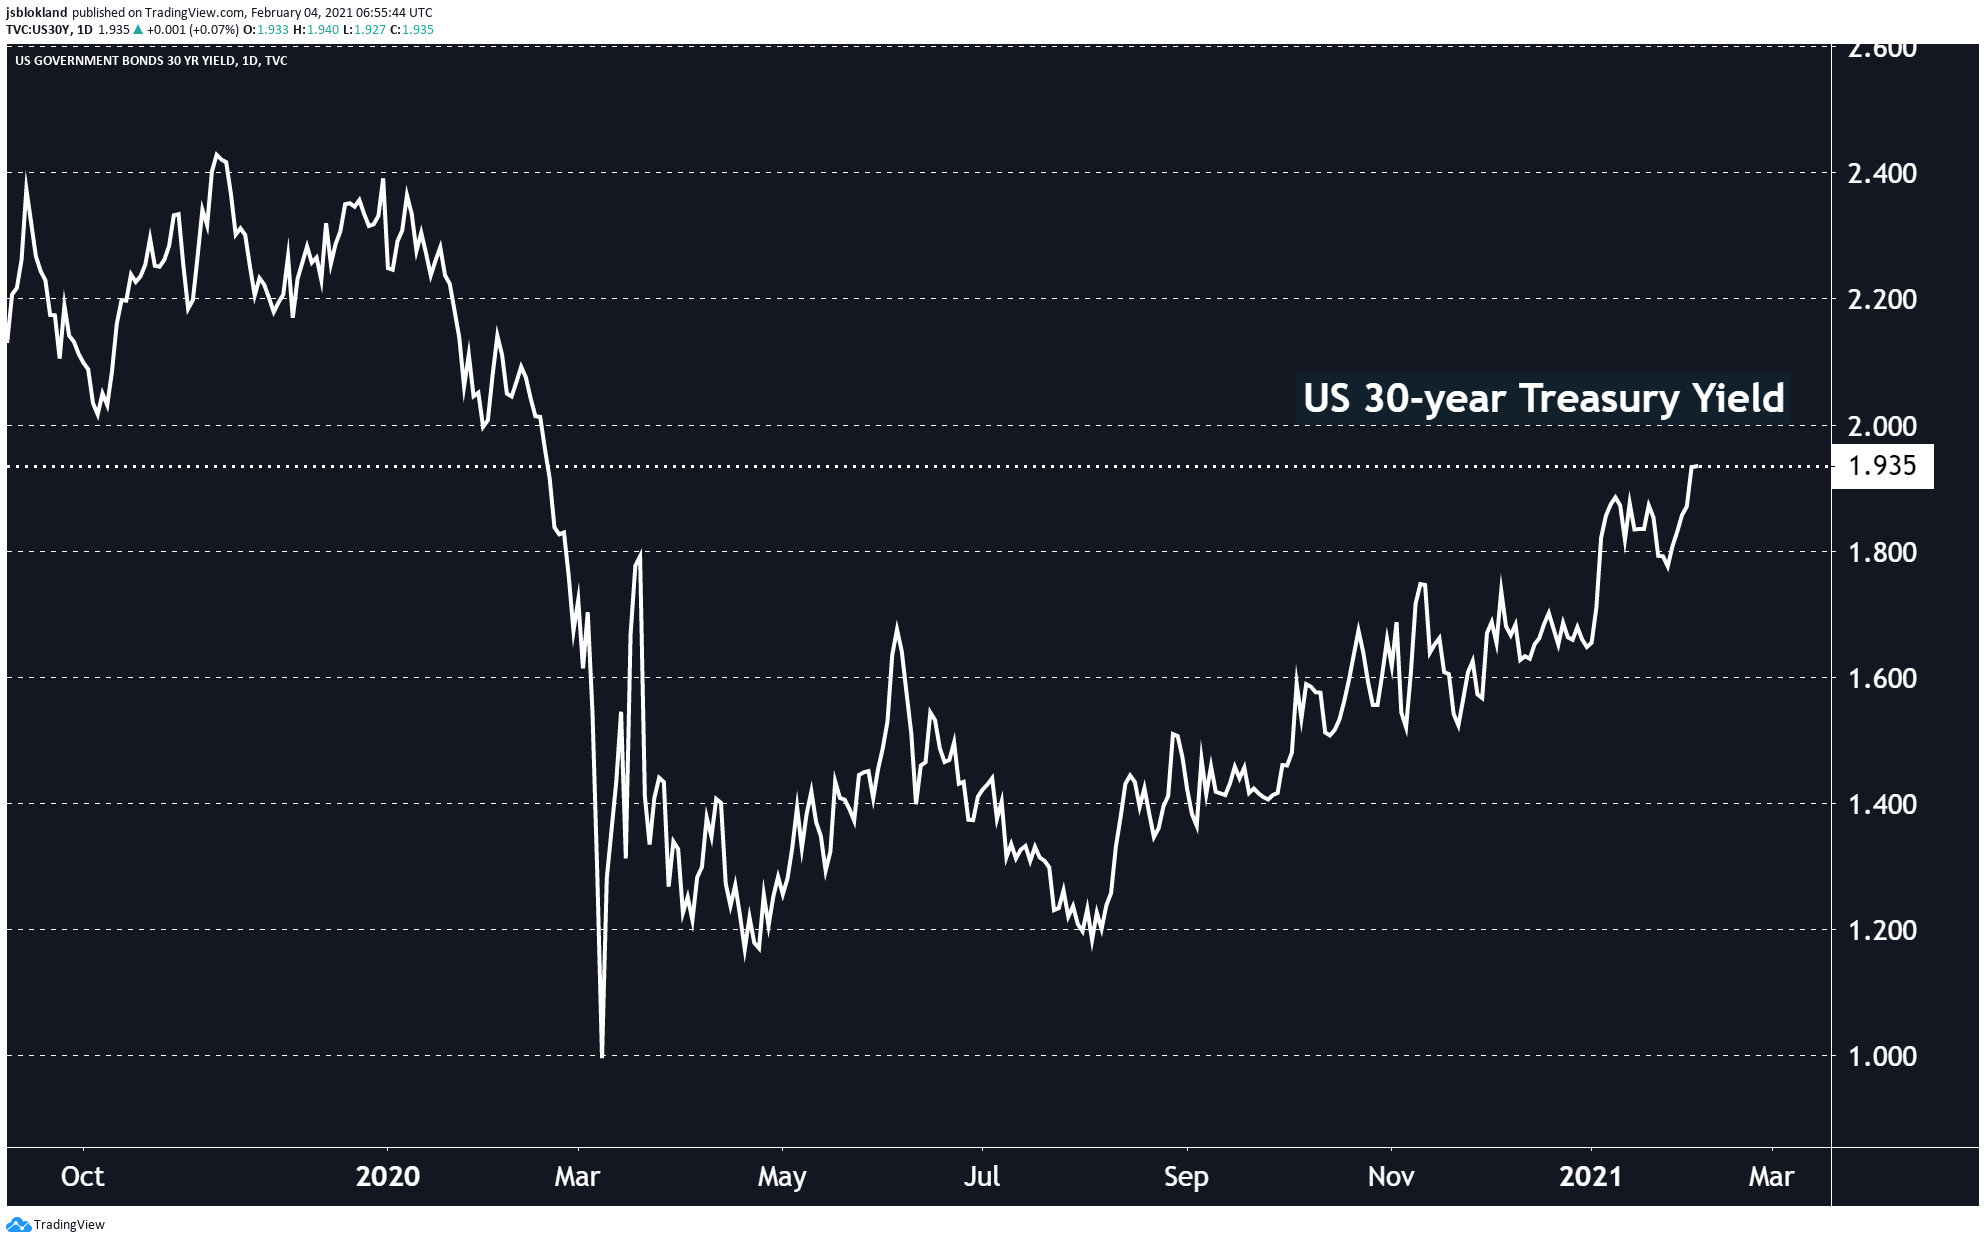 US 30-year Treasury yields continue to rise